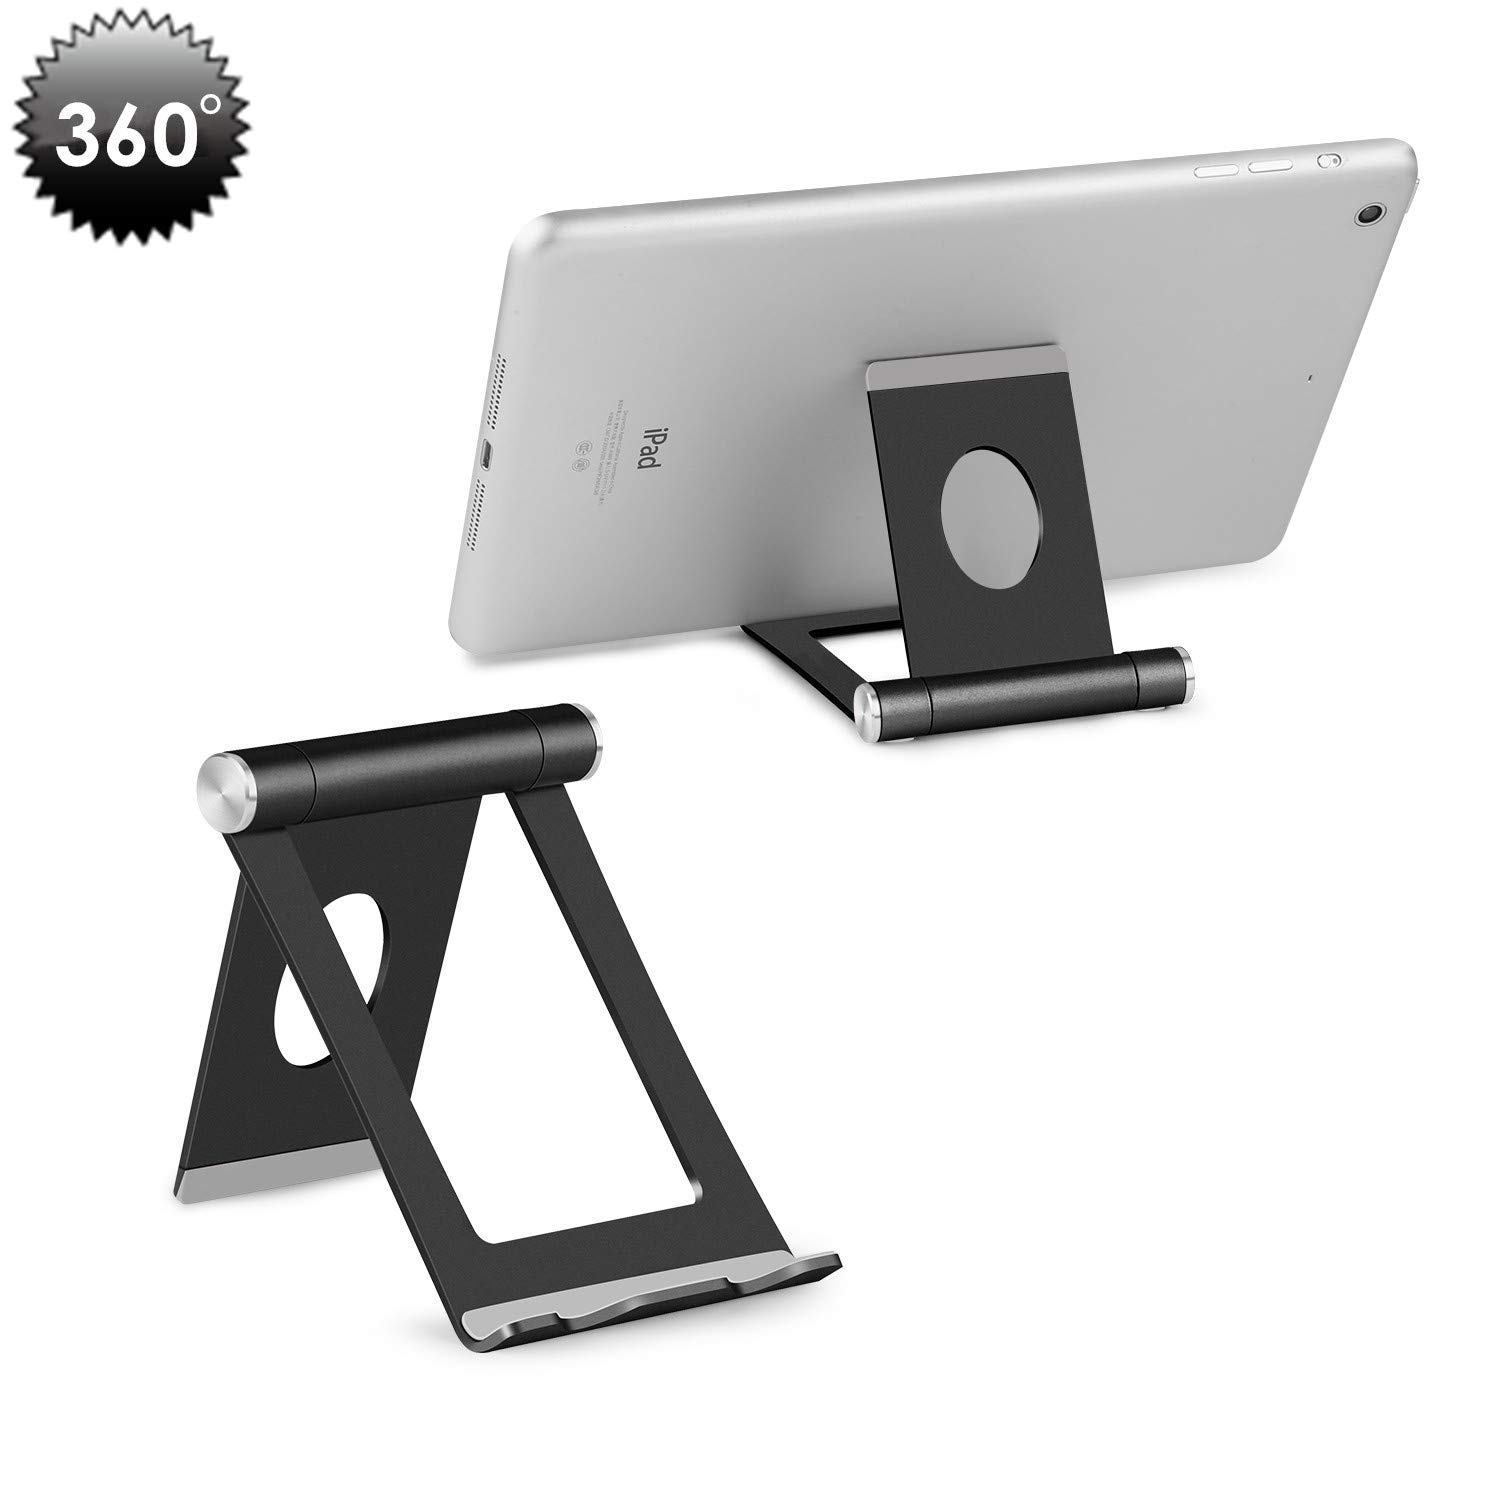 "Cell Phone Stand, YOSHINE Portable Phone Stand: Full 360° Adjustable Cell Phone Holder Cradle Dock for Phone Xs XR X 8 7 6 6S Plus, Universal Aluminium Stand for Cellphones & Tablets (4-10.1"") - Black"